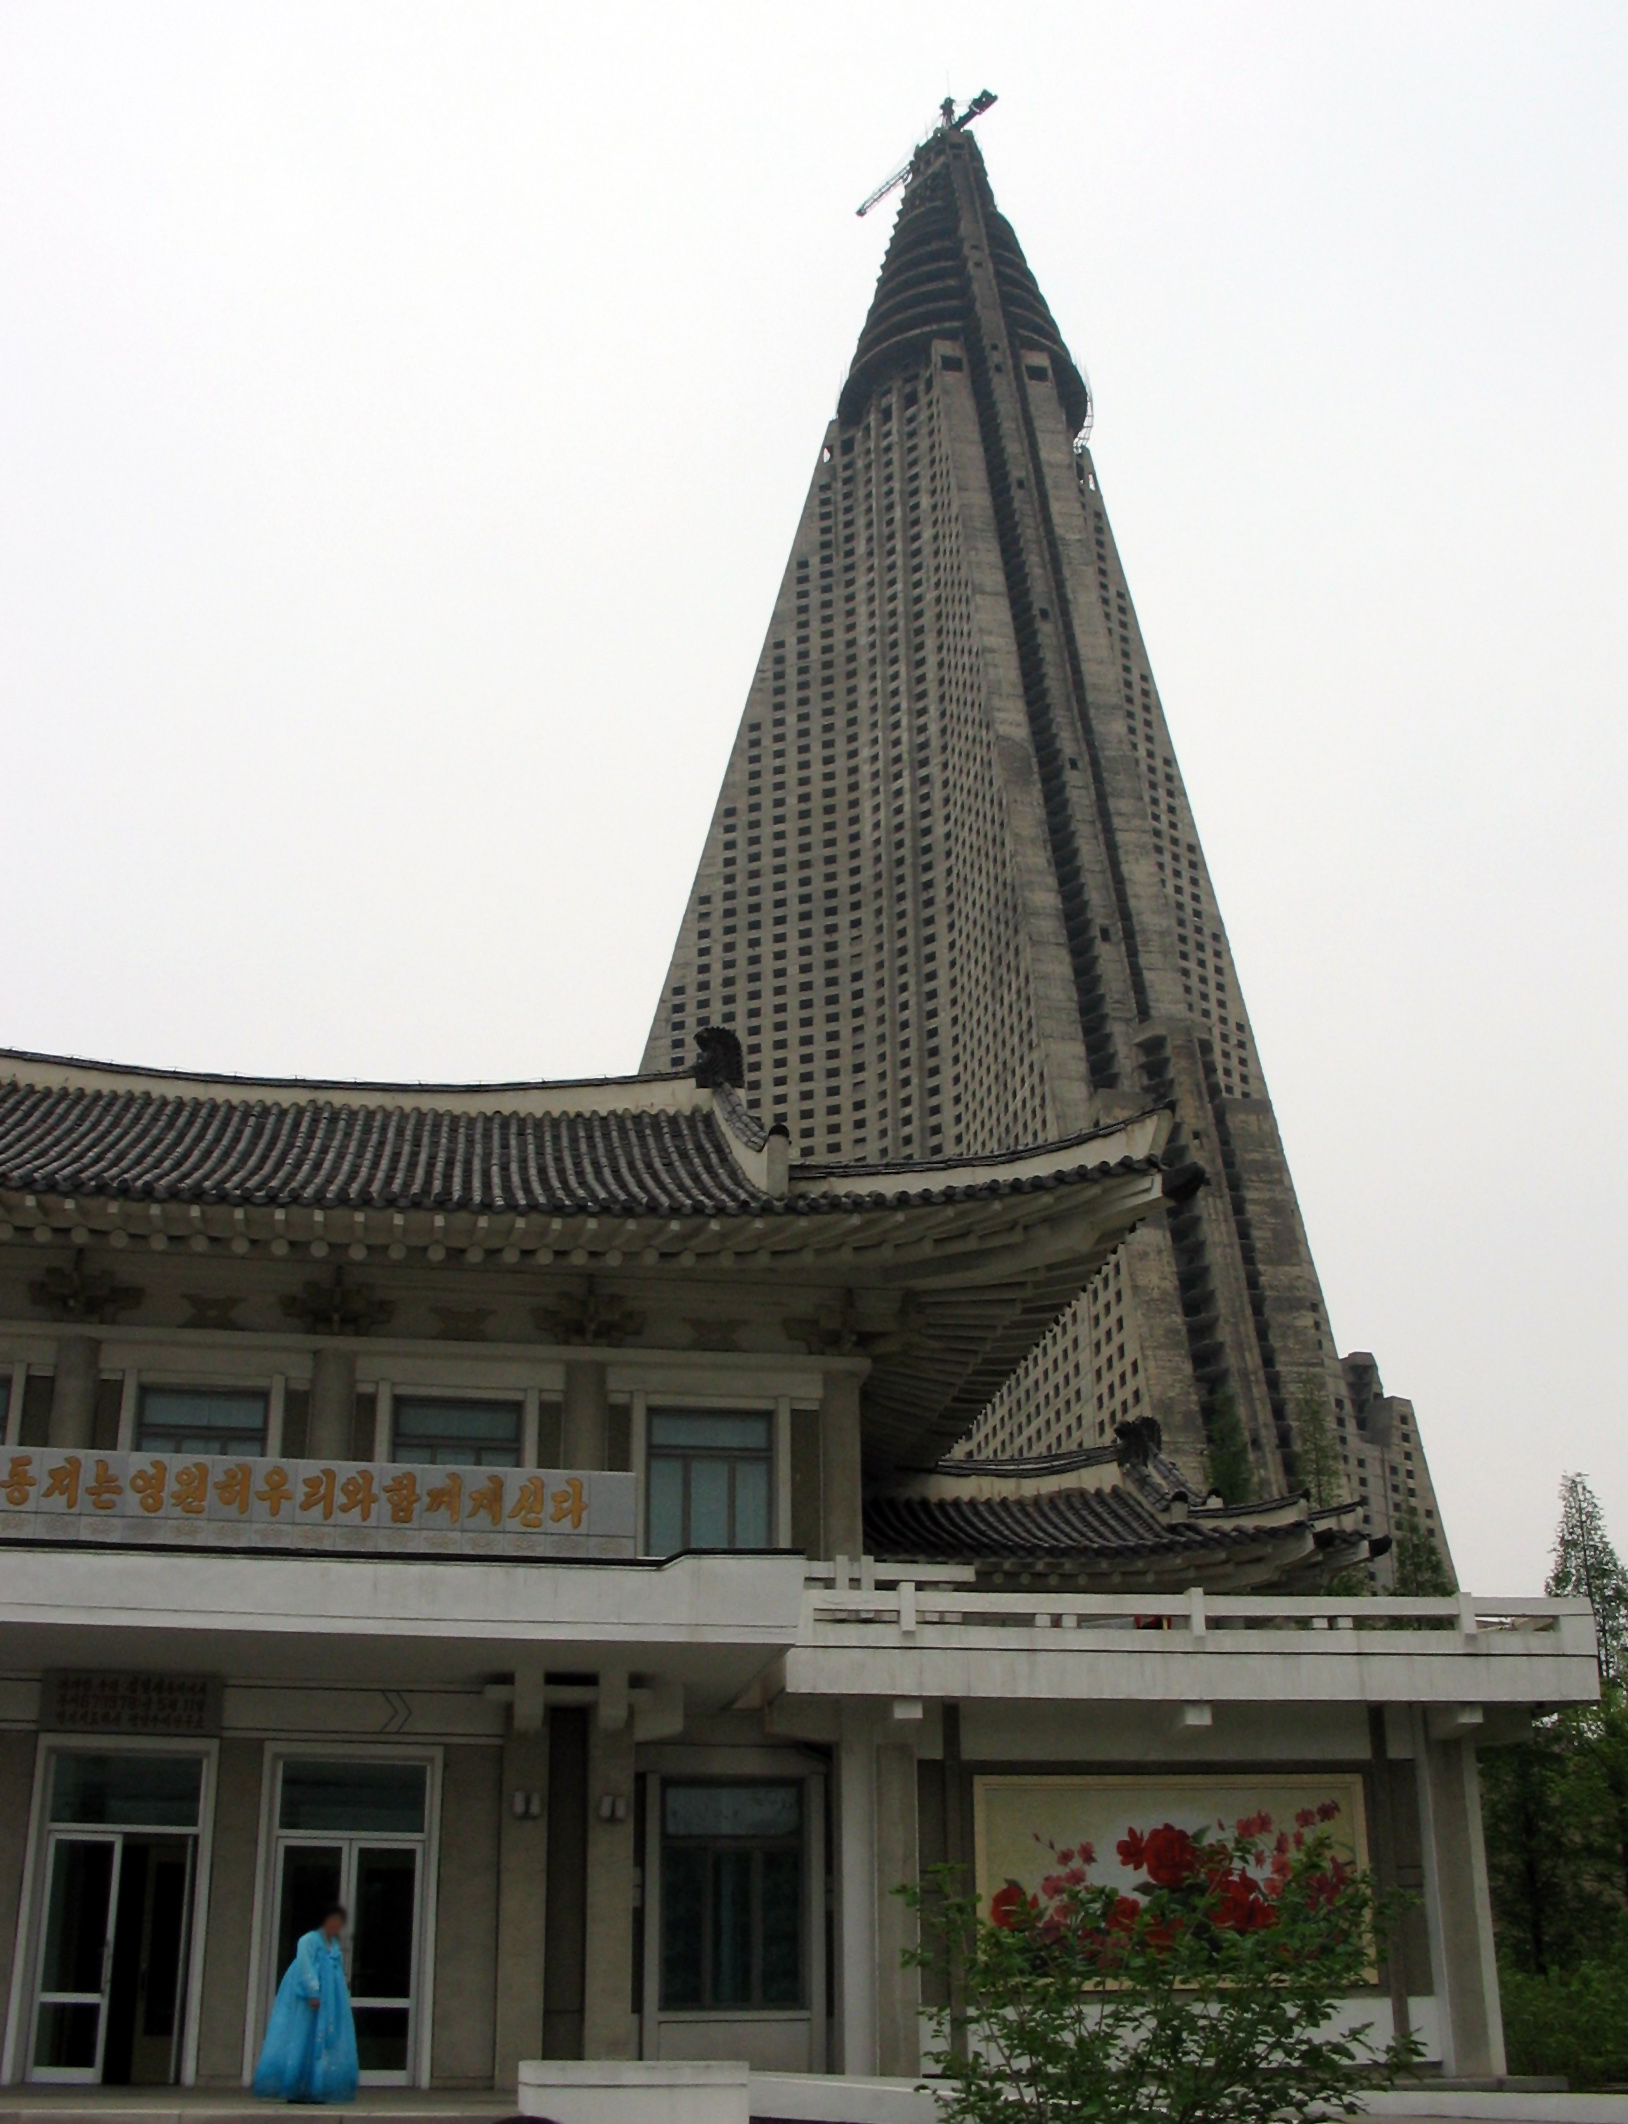 http://upload.wikimedia.org/wikipedia/commons/archive/6/6c/20070816201633!Ryugyong_Hotel_-_May_2005.JPG